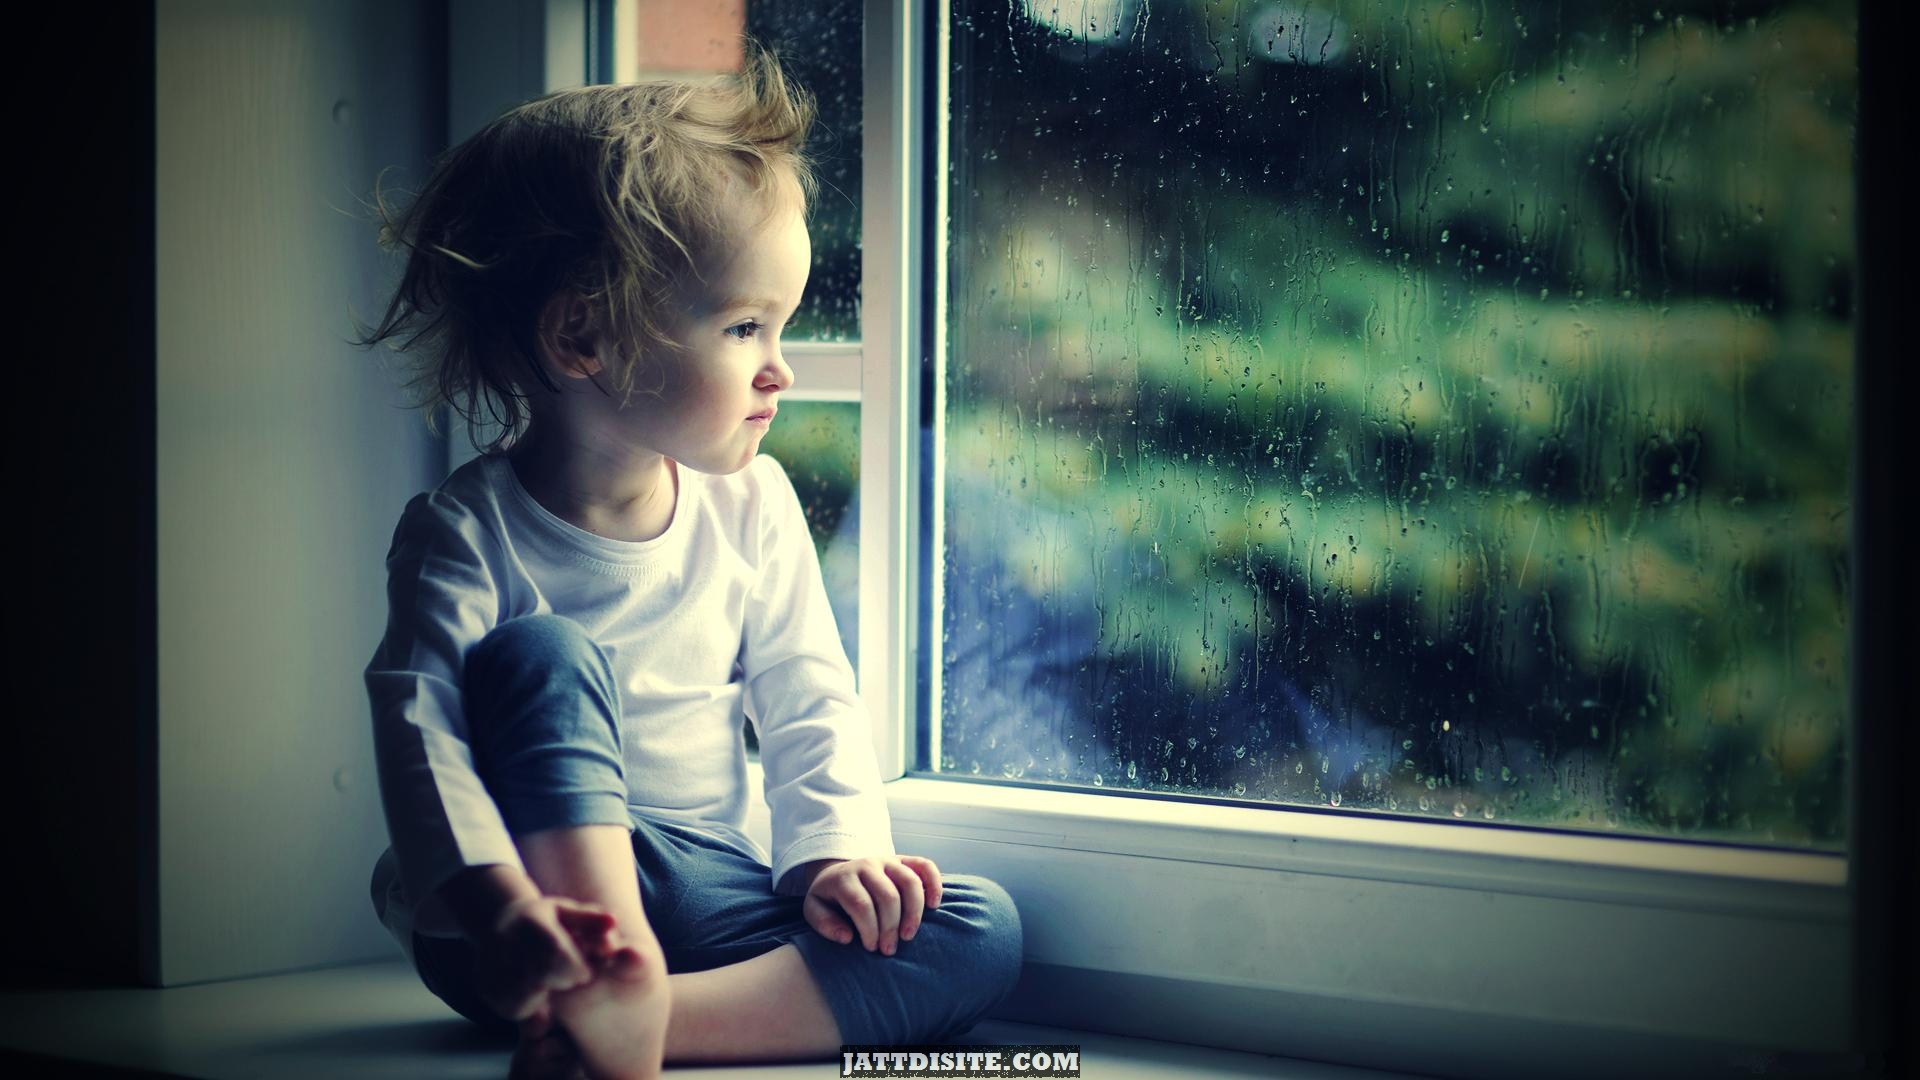 Cute Small Baby Girl Wallpapers Waiting For You Pictures Images